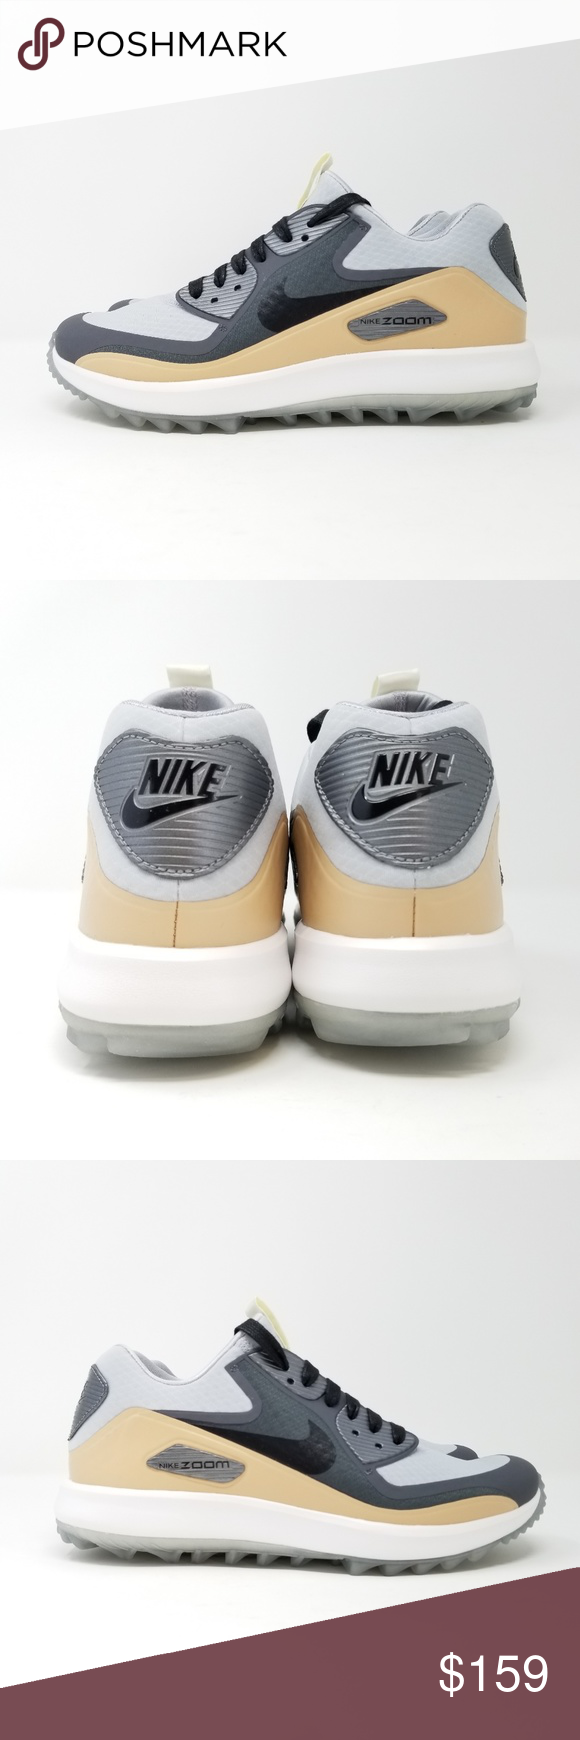 new style 35814 437cd Nike Air Zoom 90 IT NGC Golf Shoes Rory McIlroy NWT | My ...